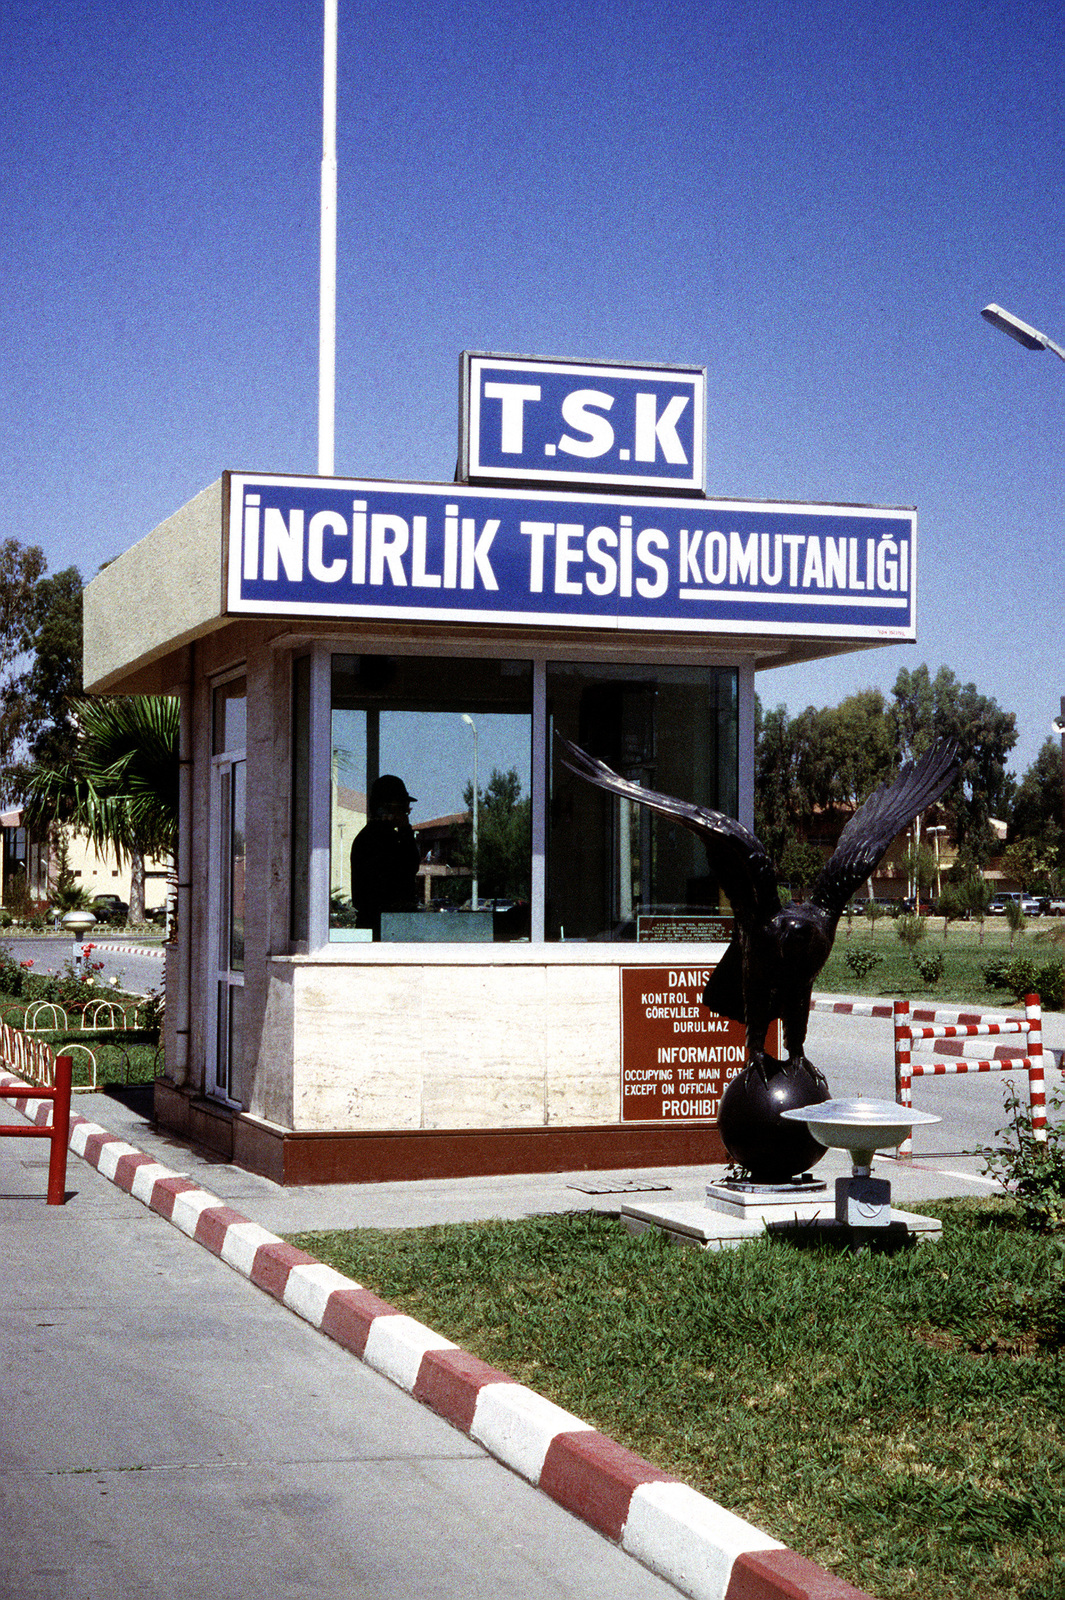 A close-up view of the main gate looking west. The gate is controlled and staffed by Turkish military. A U.S. Air Force Security Policeman serves on the gate as liaison